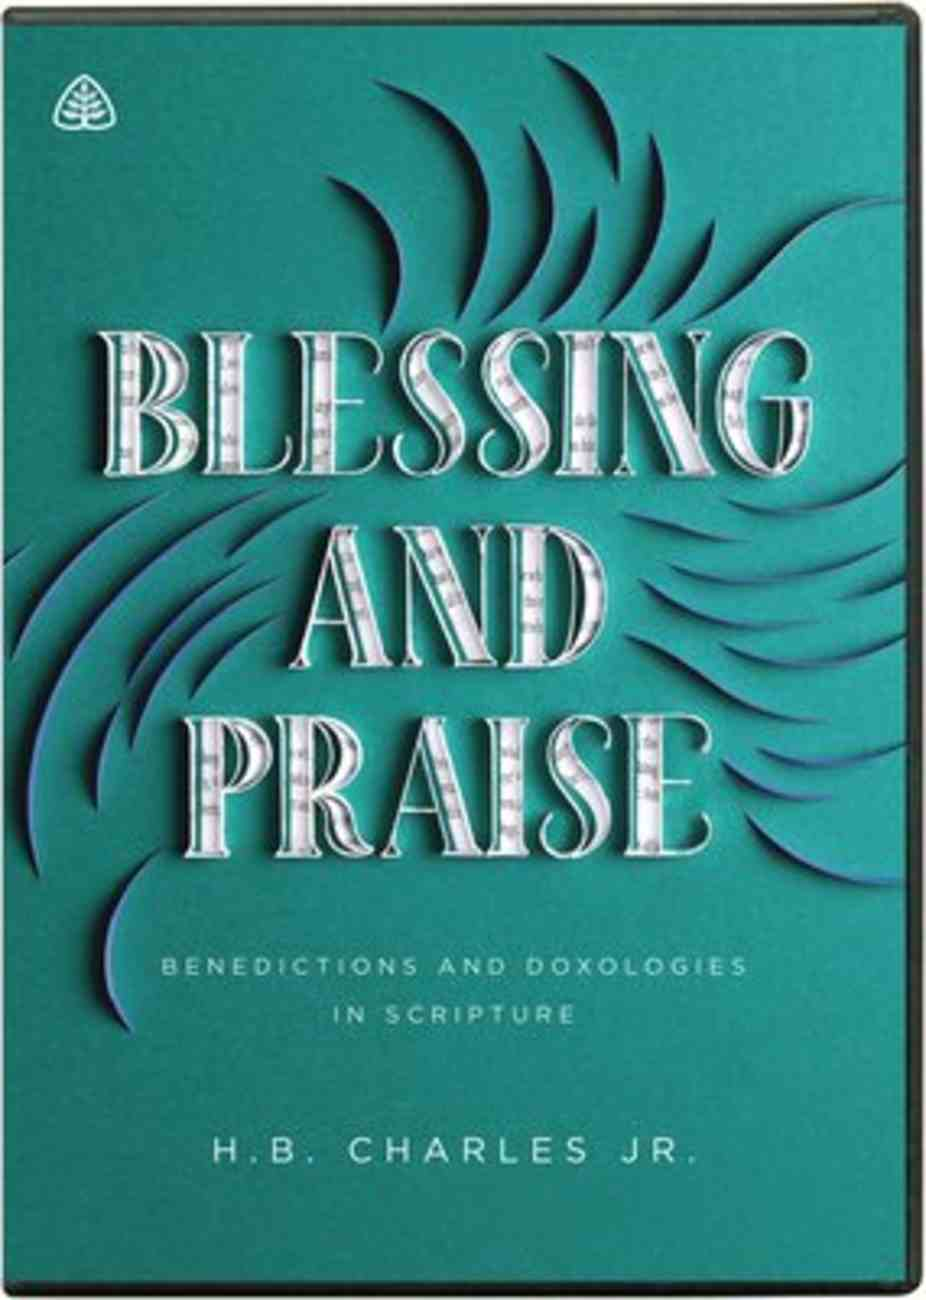 Blessing and Praise: Benedictions and Doxologies in Scripture (8 Twenty Three Minute Messages) (Dvd) DVD